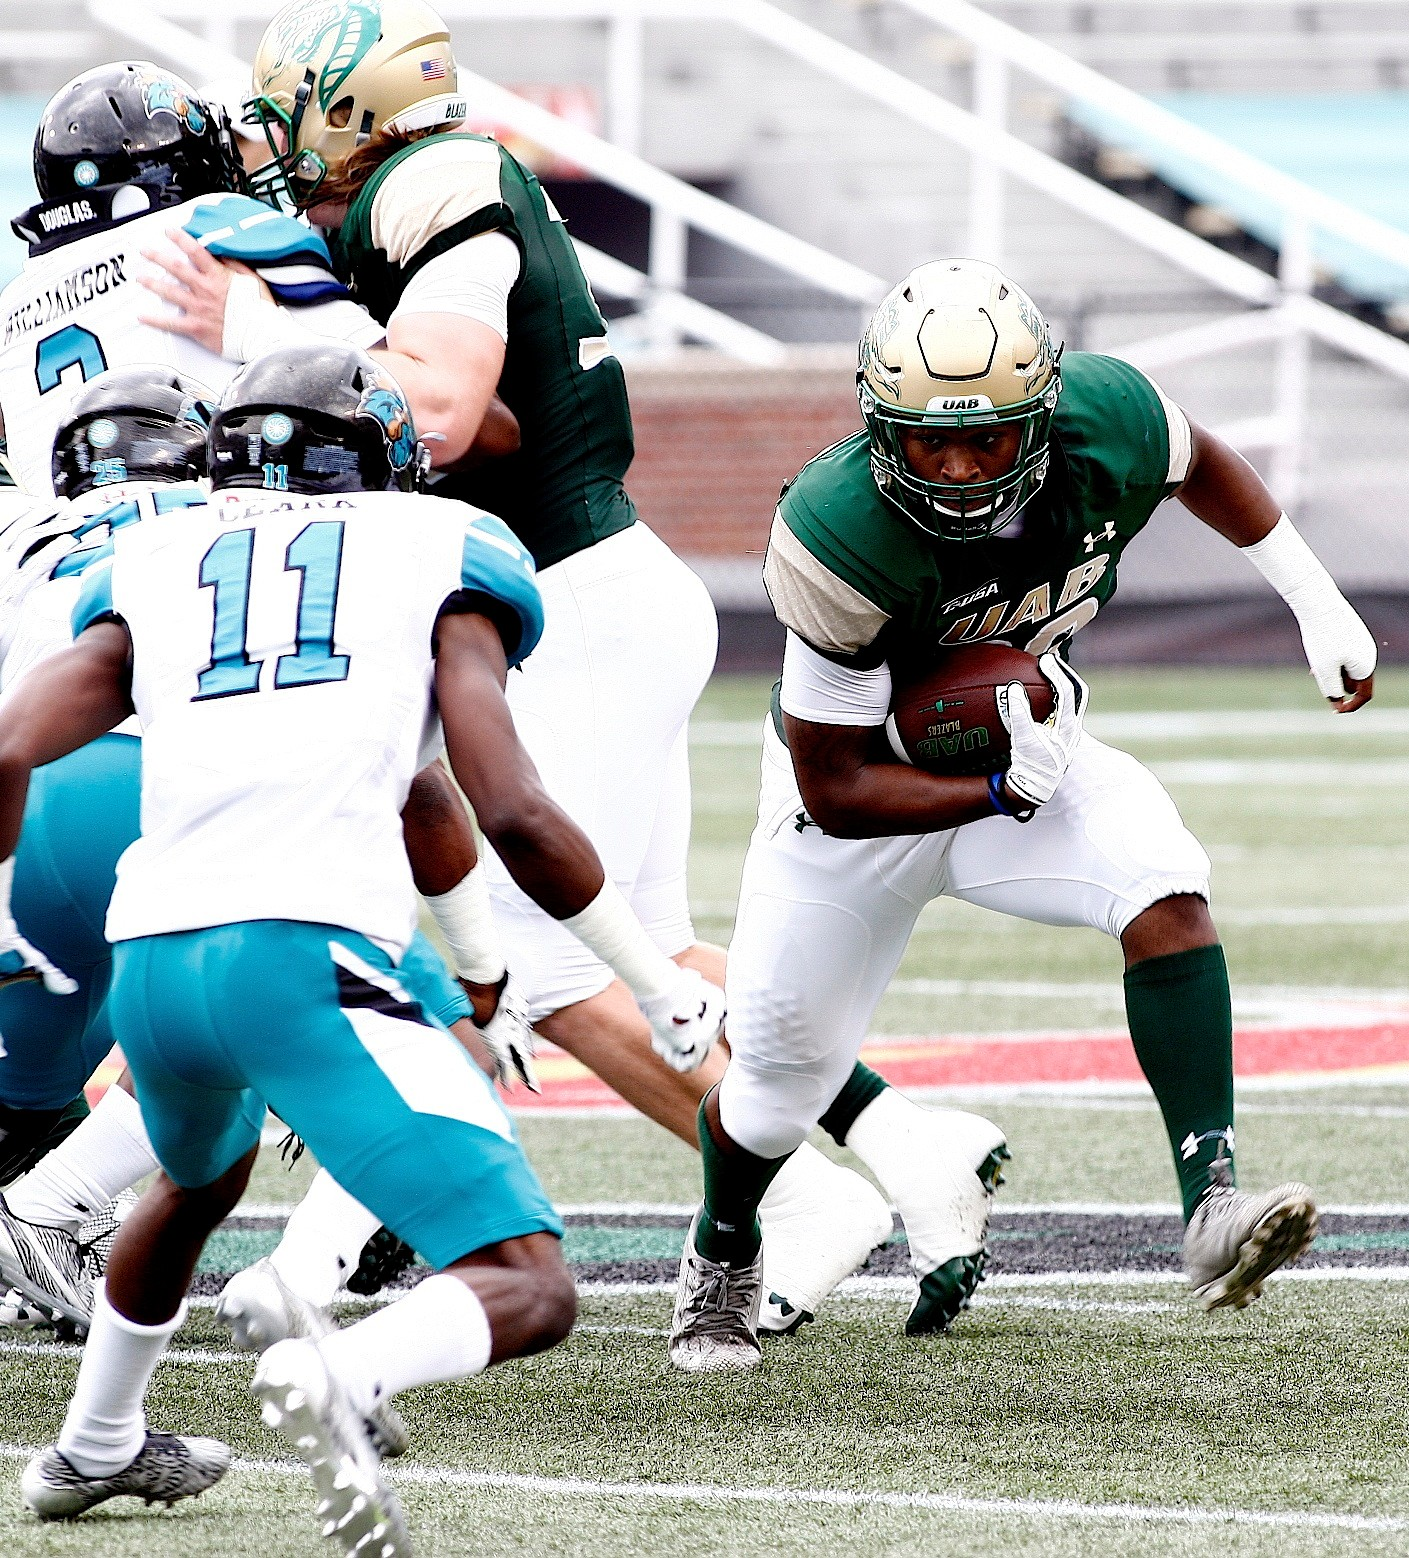 UAB running back Spencer Brown runs against Coastal Carolina during Saturday's game at Legion Field. Brown rushed for two touchdowns in the Blazers' 30-23 win.